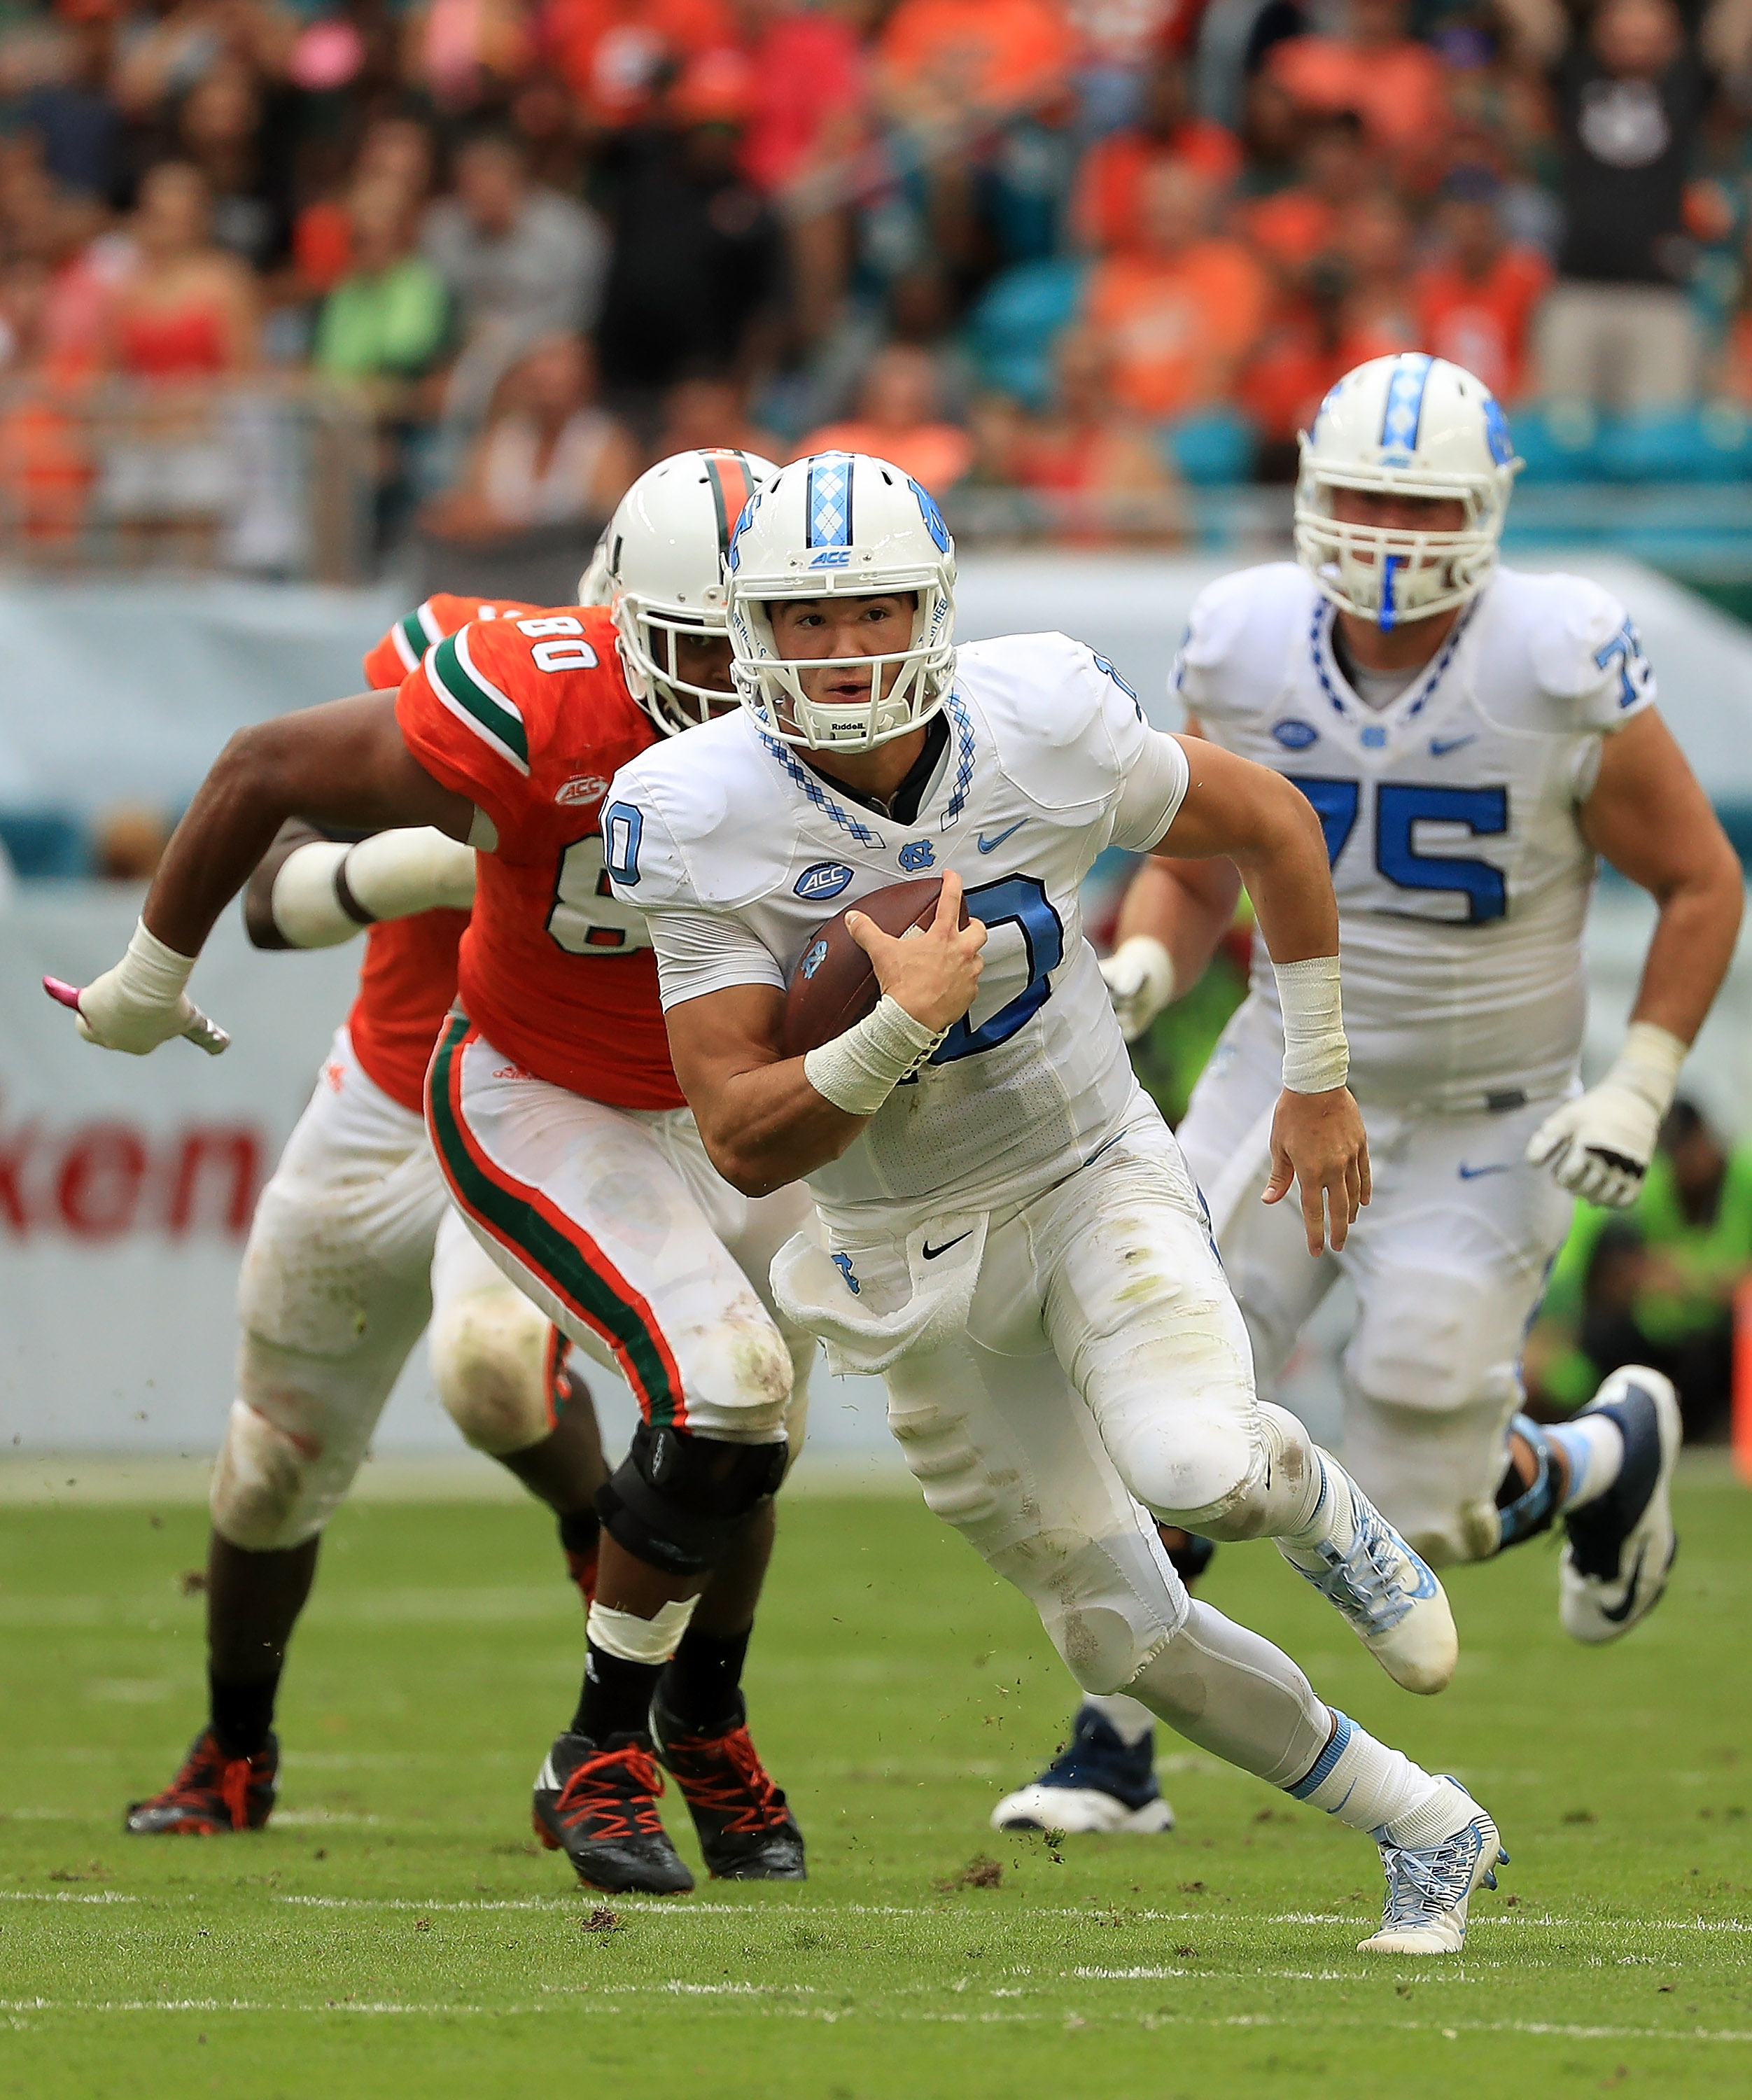 Mitchell Trubisky of the North Carolina Tar Heels is at the top of what appears to be a weak quarterback class. (Photo by Mike Ehrmann/Getty Images)